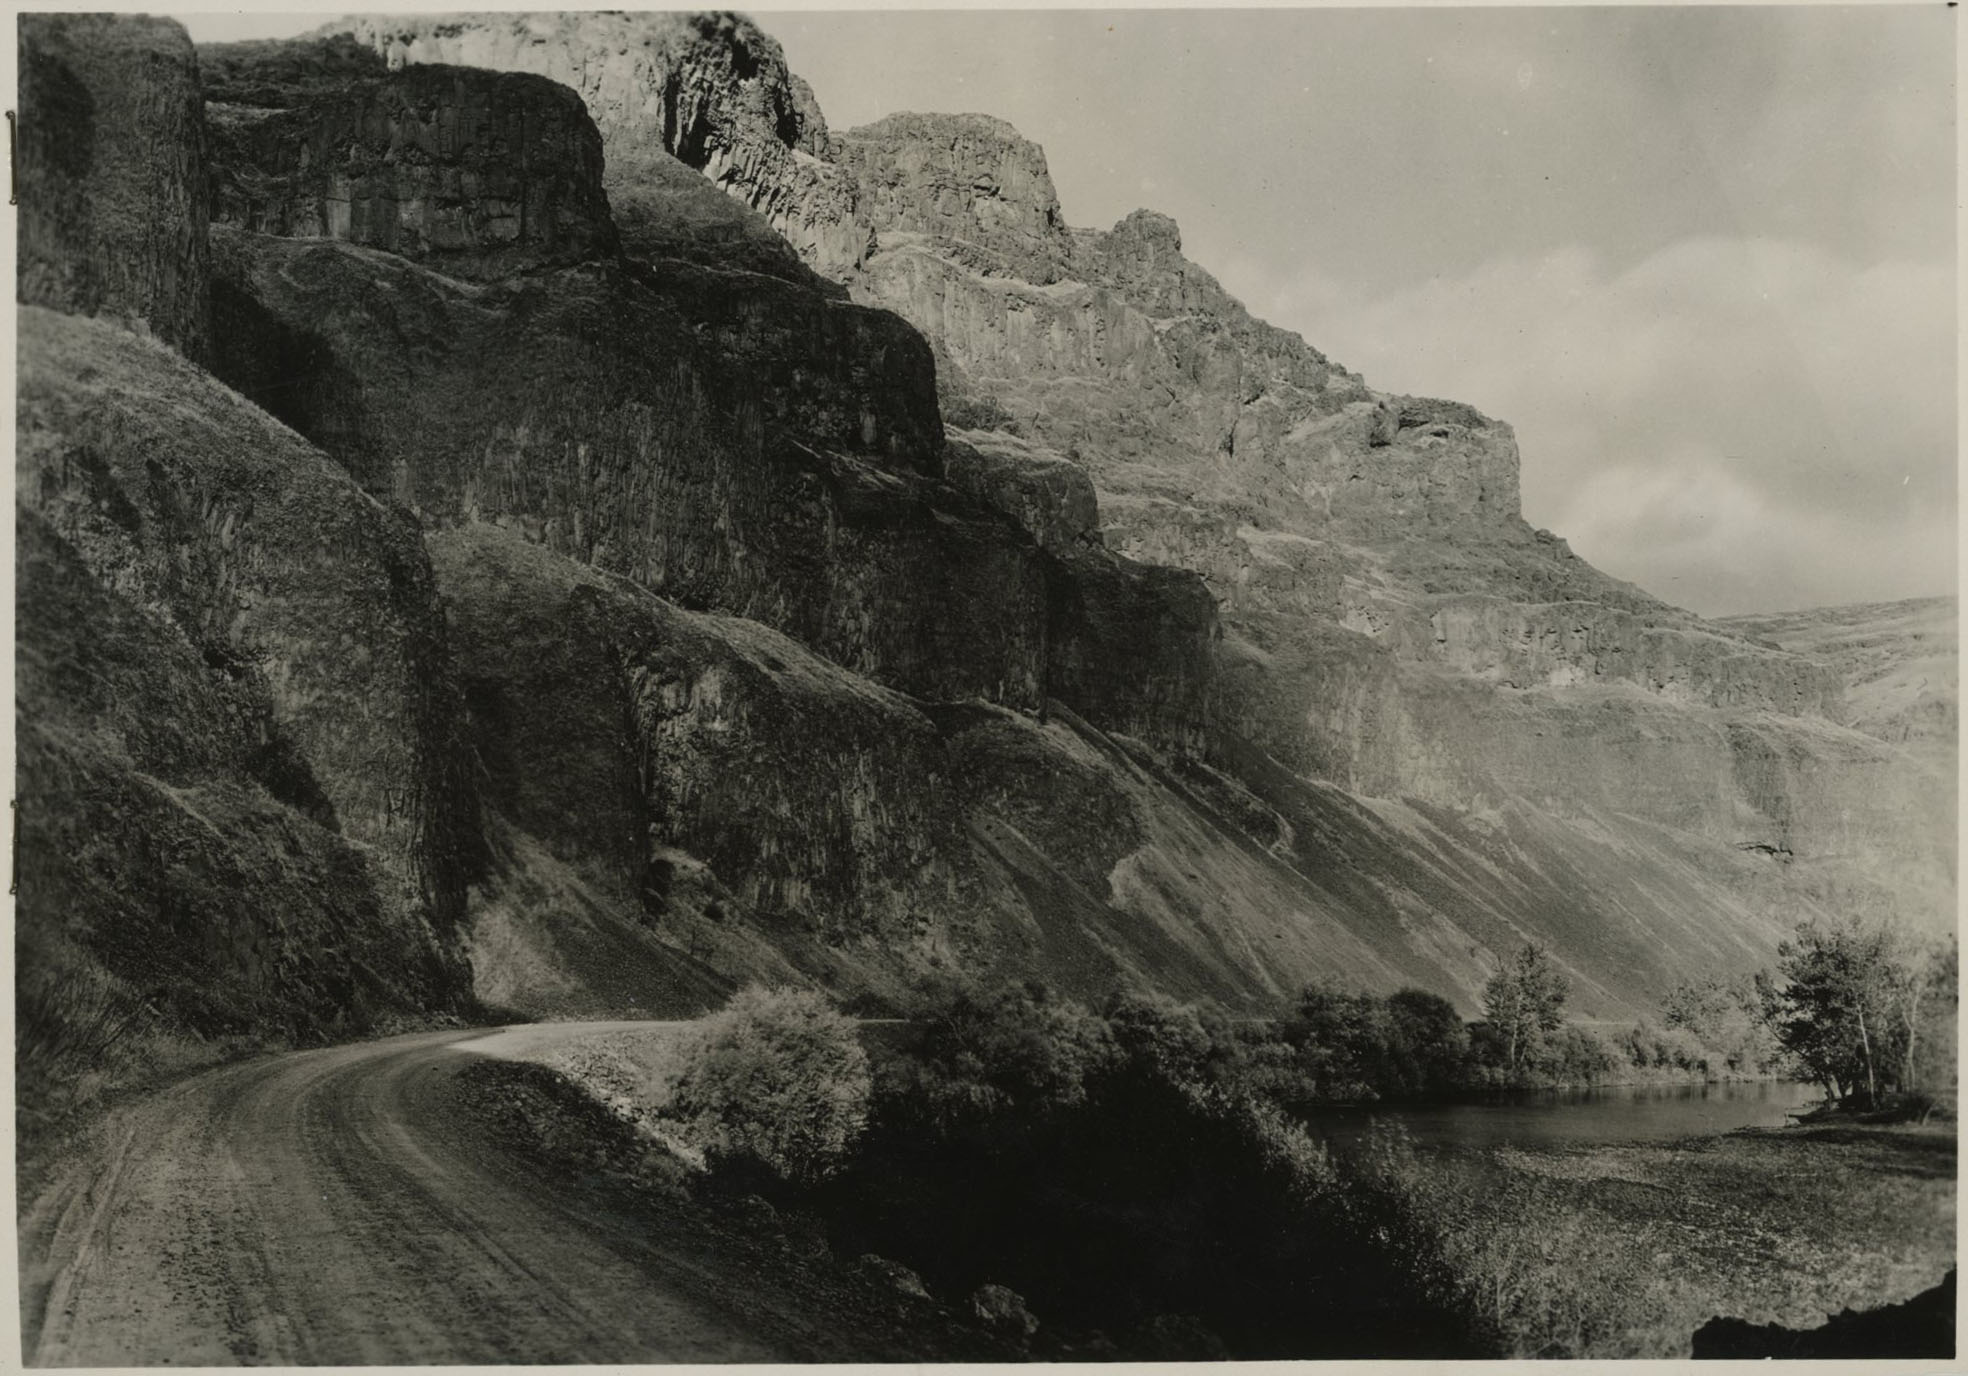 Basalt bluffs along John Day River Canyon, 1937